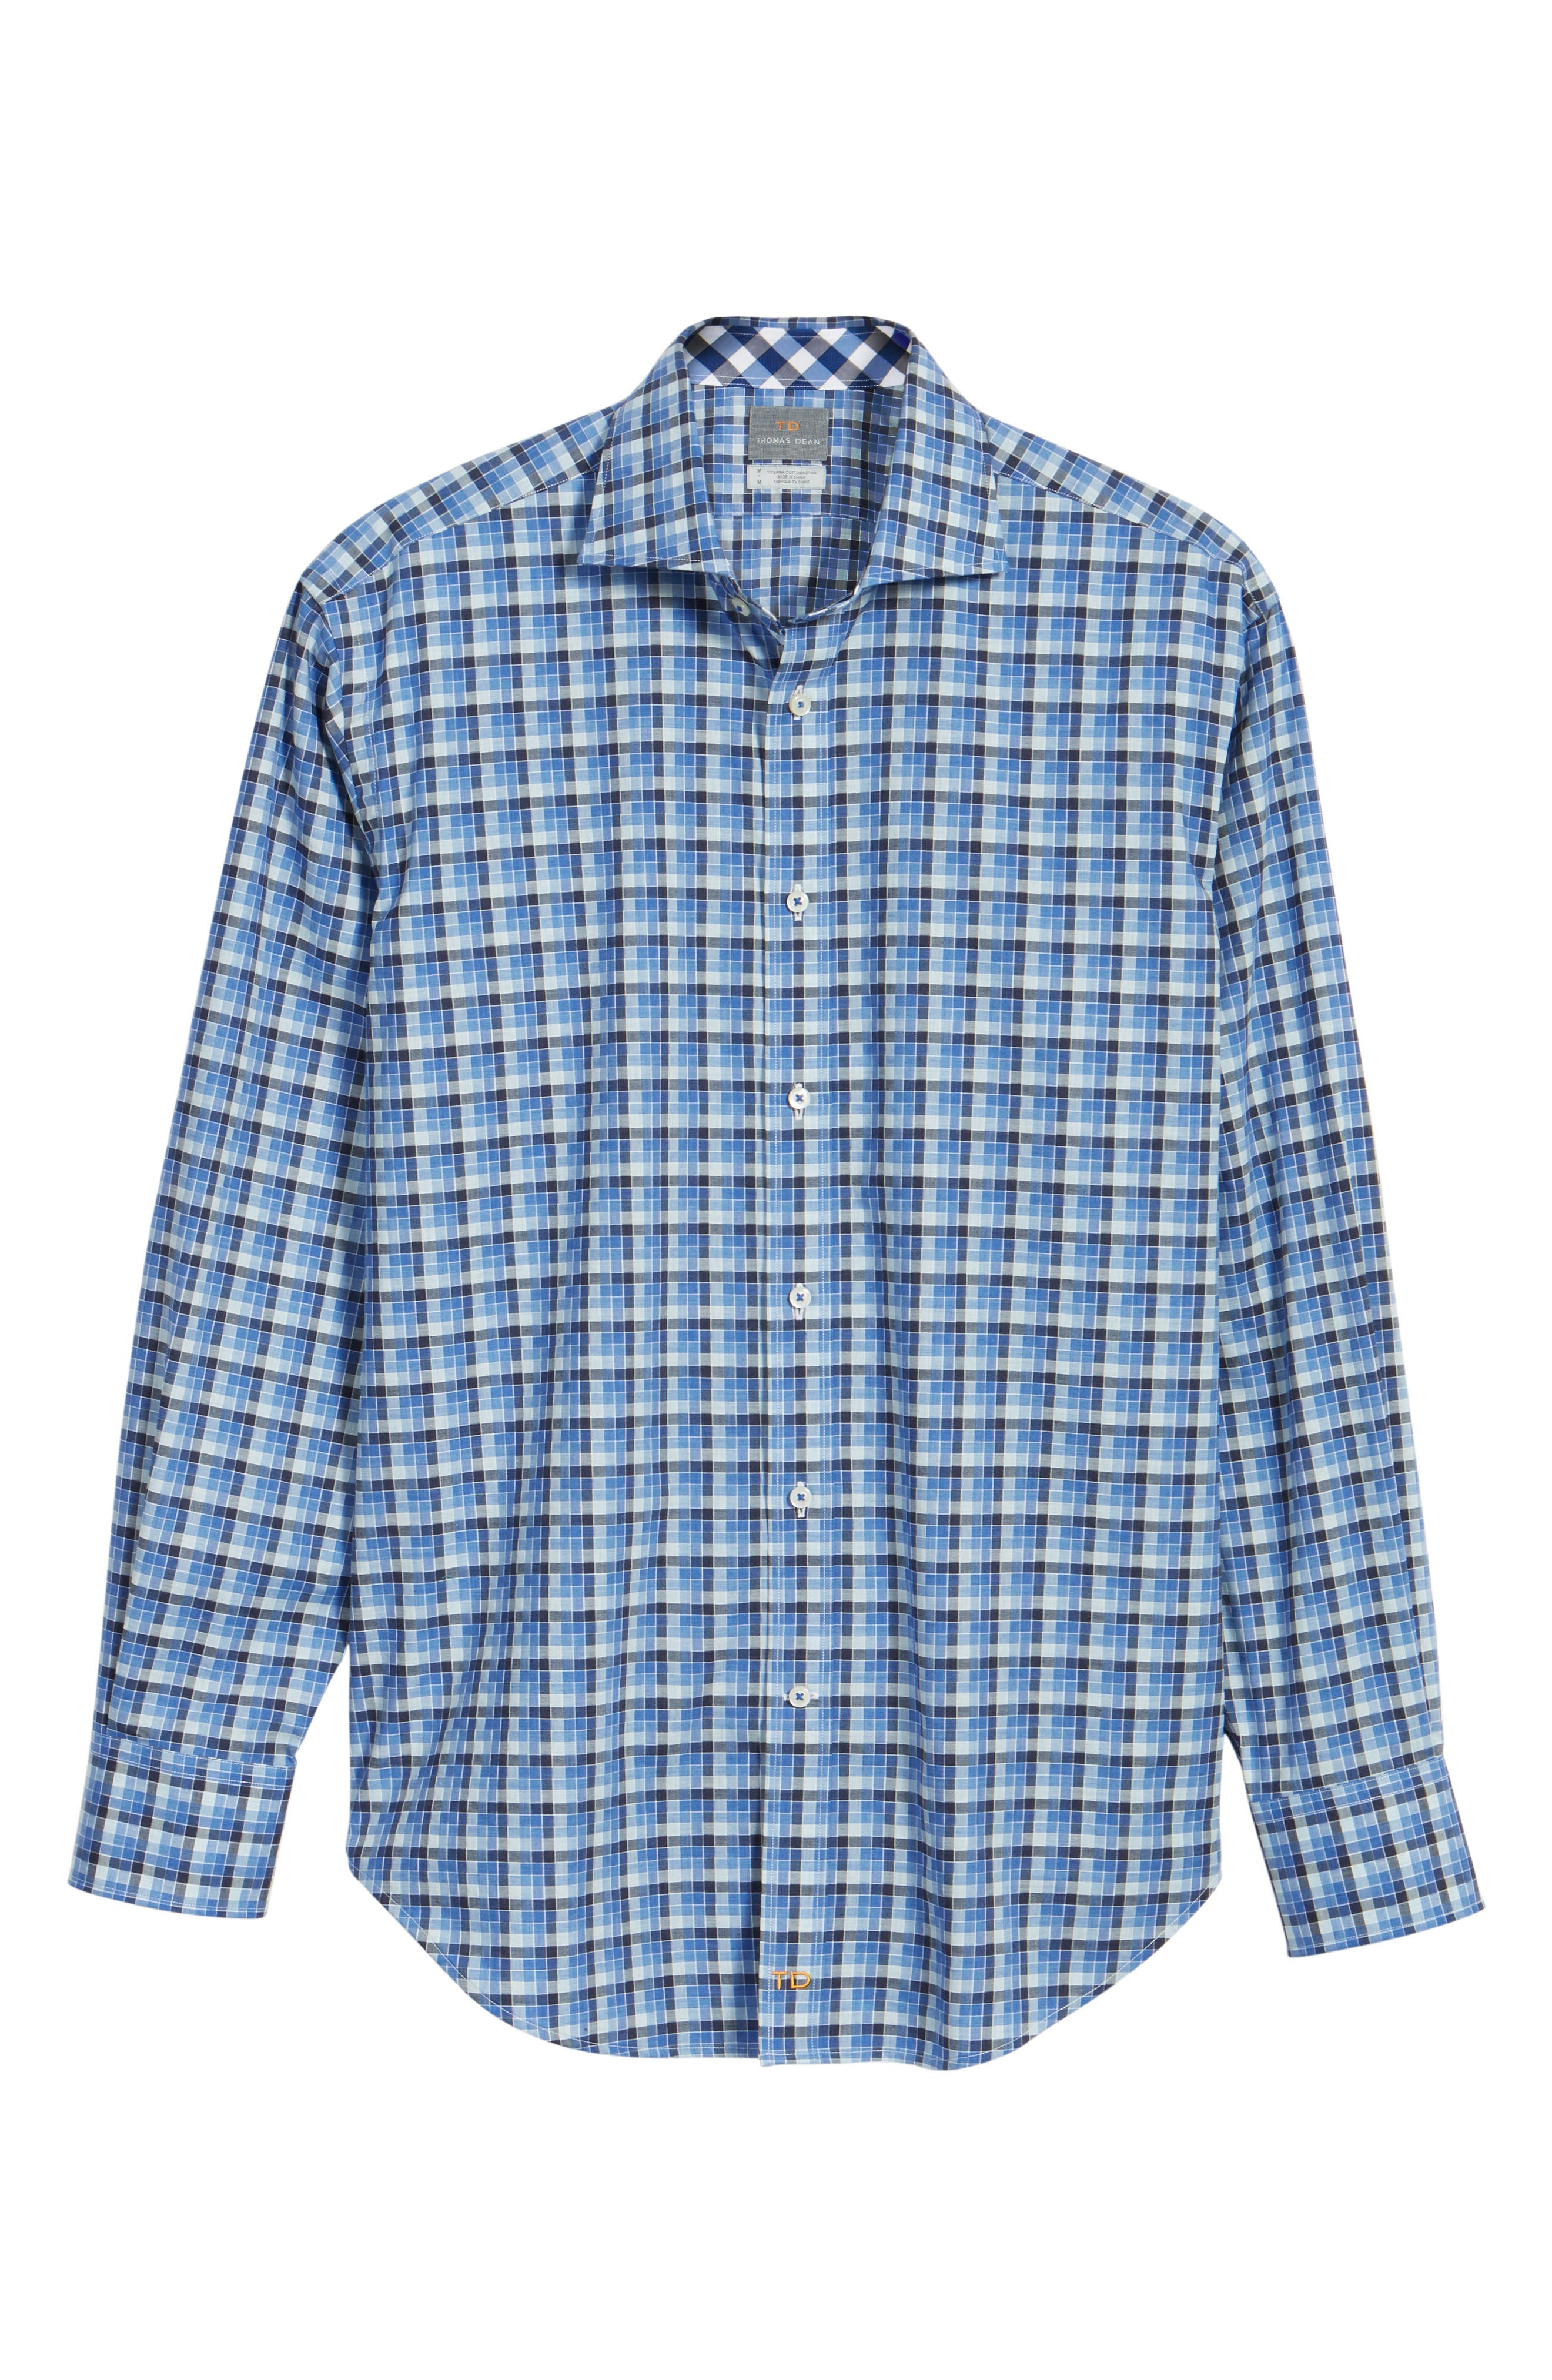 Classic Fit Funky Check Sport Shirt,                             Alternate thumbnail 6, color,                             Blue